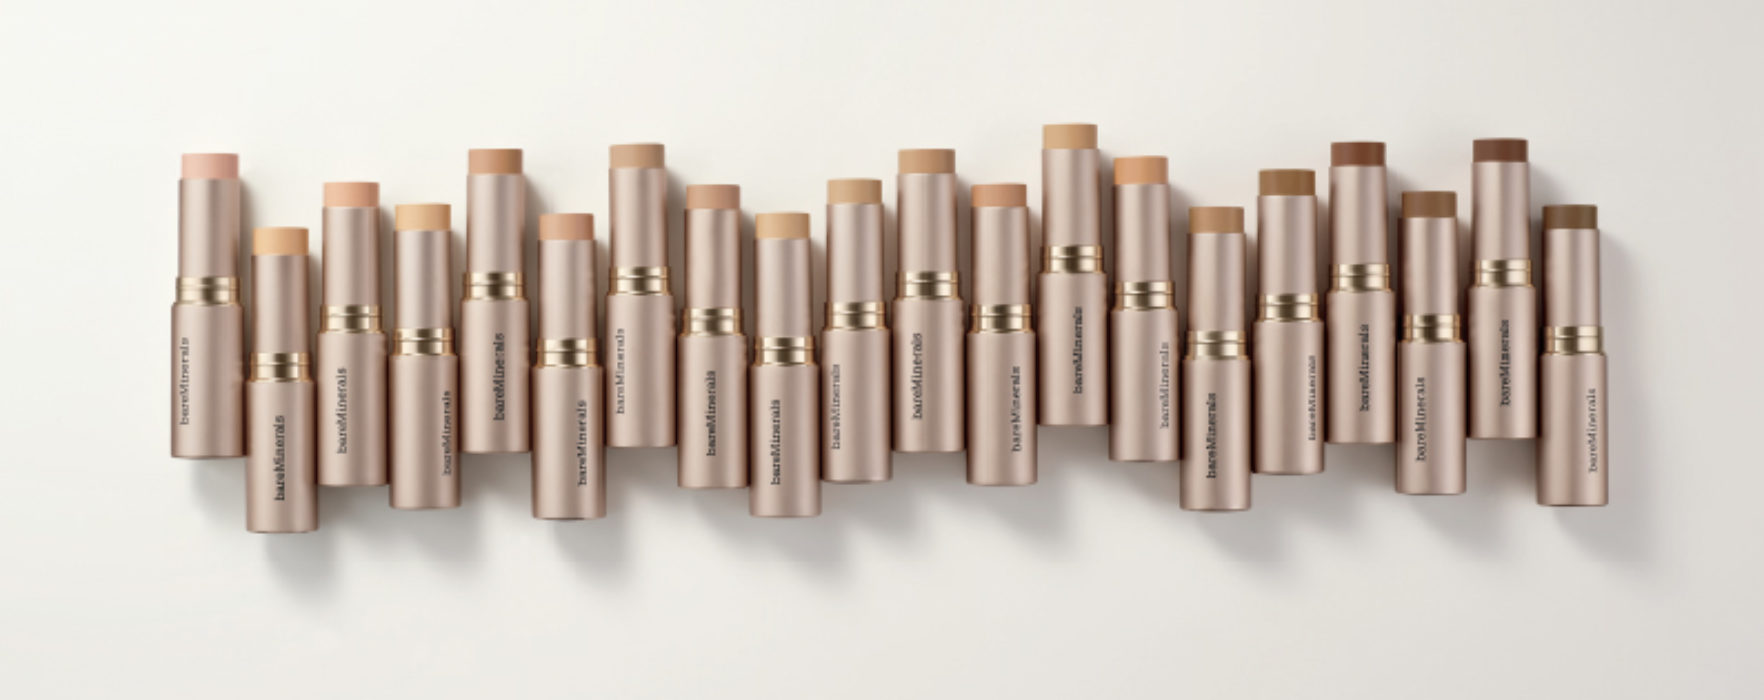 bareMinerals introduces its first water-based liquid foundation stick